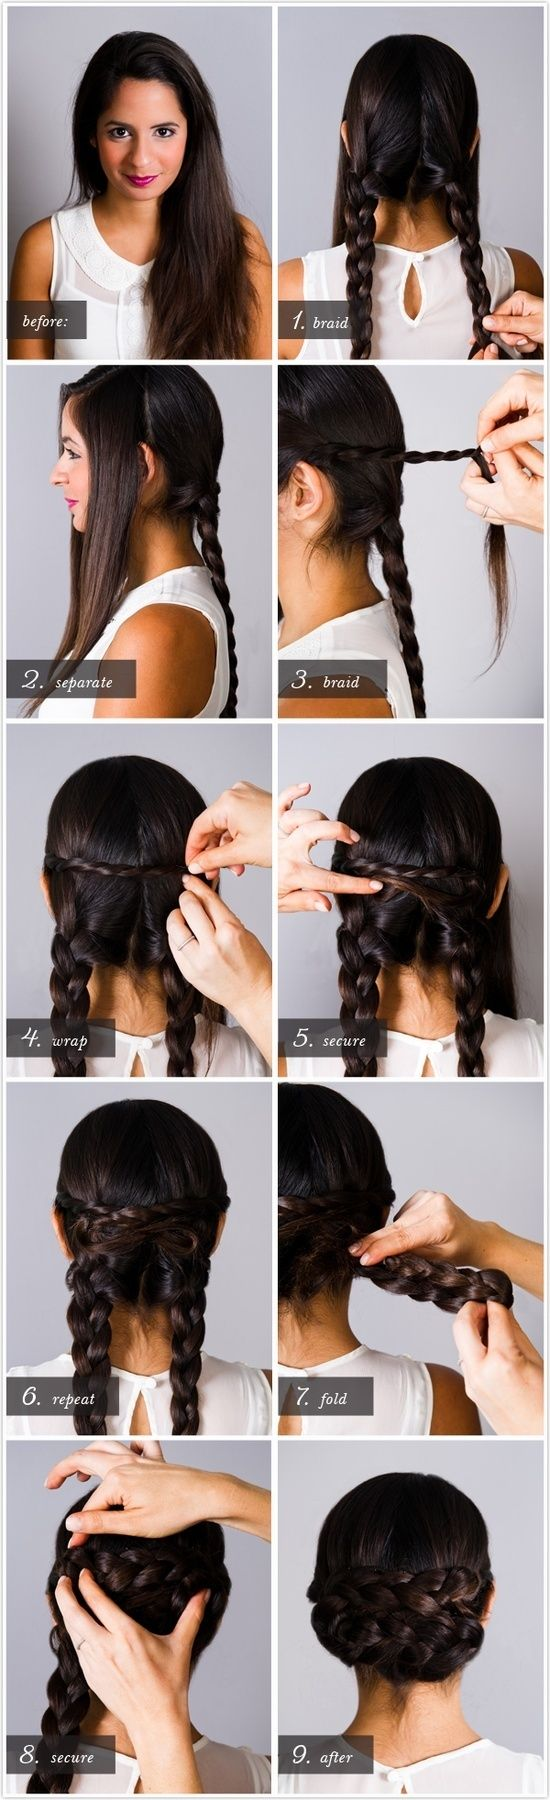 Hunger Games - Katniss Braid // might be worth trying even though this woman has twice the hair volume I have...